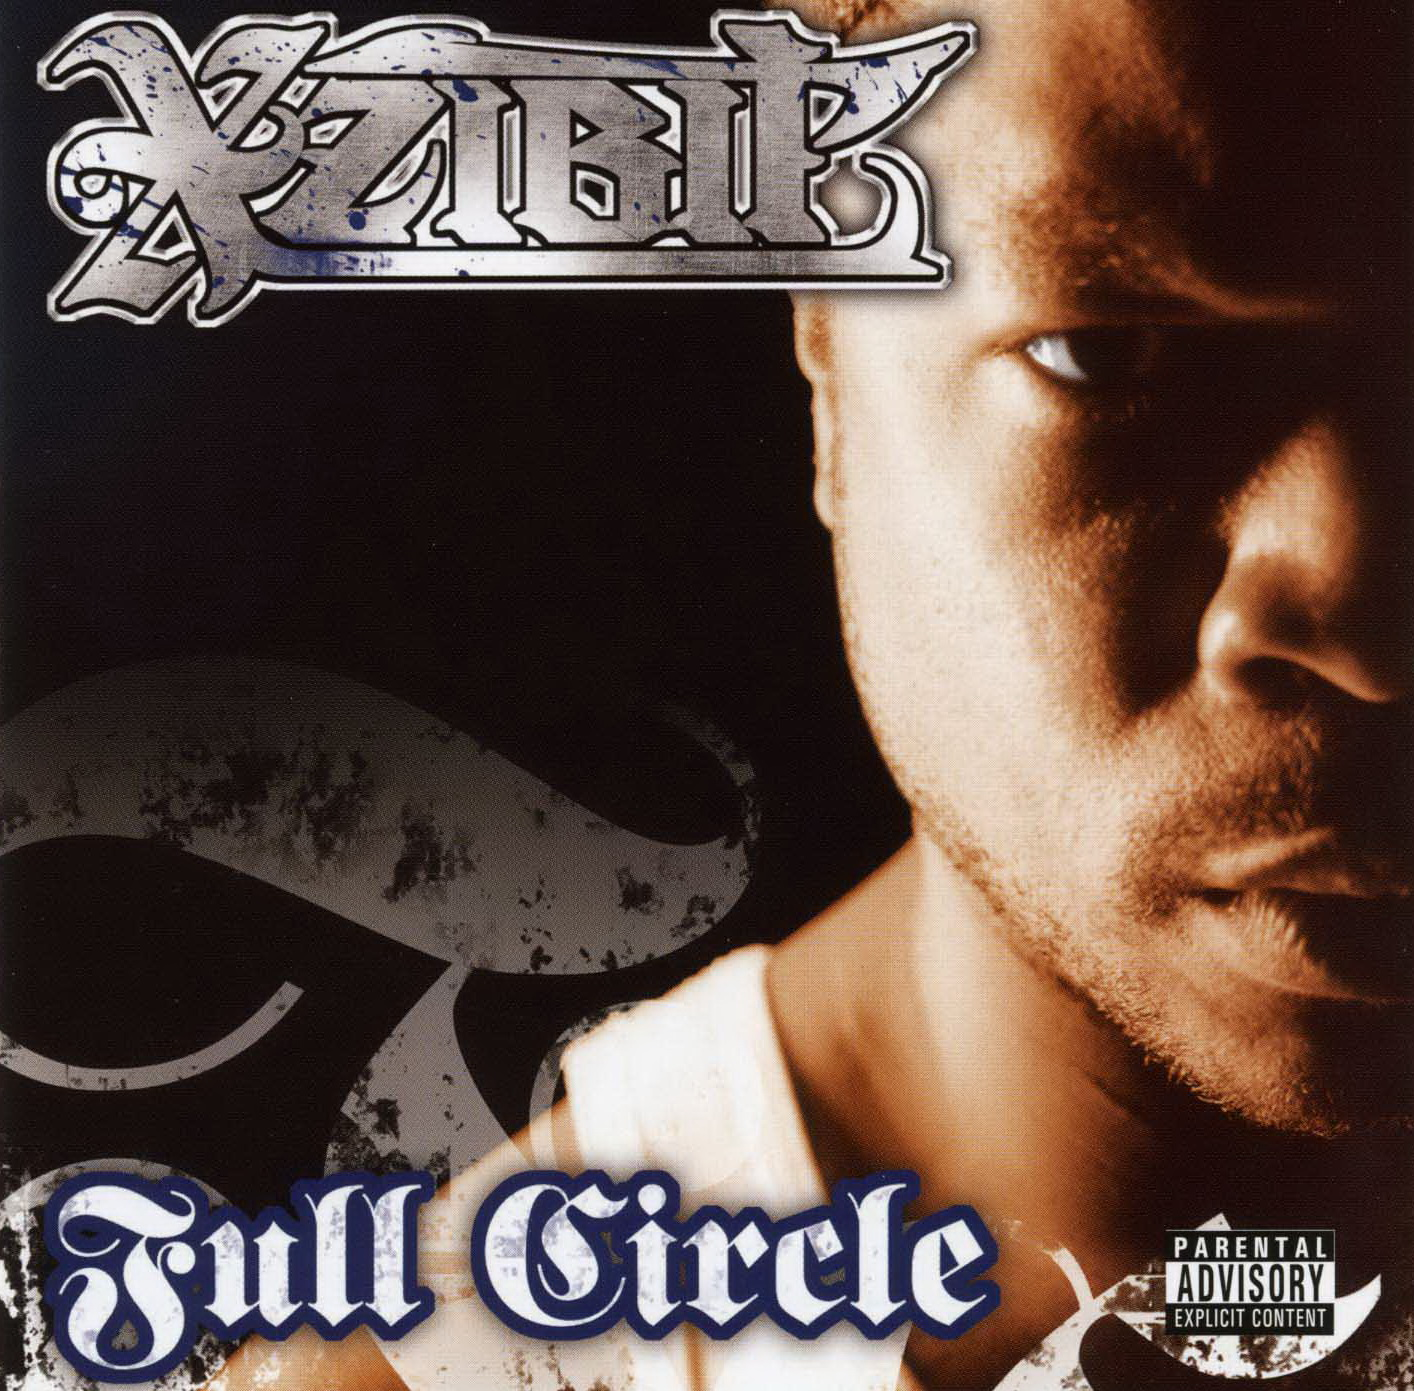 Art for Poppin' Off (Feat. DJ Quik & King T) by Xzibit